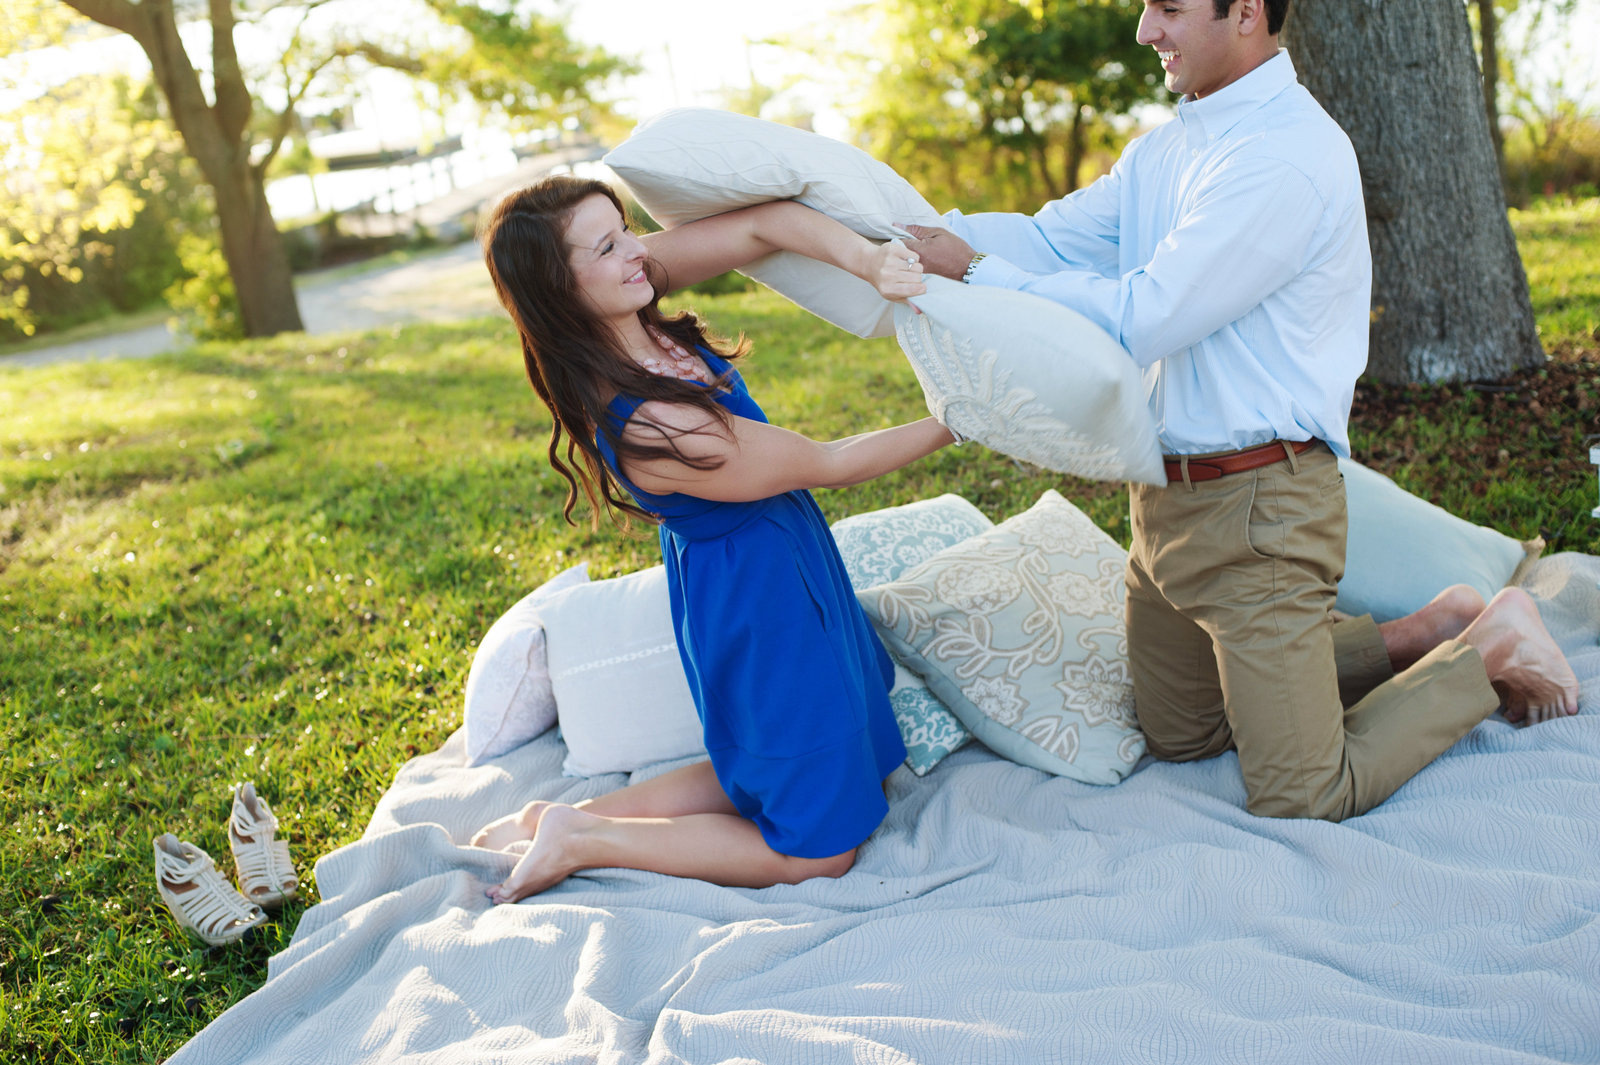 an engaged couple have a pillow fight on a blanket in the grass